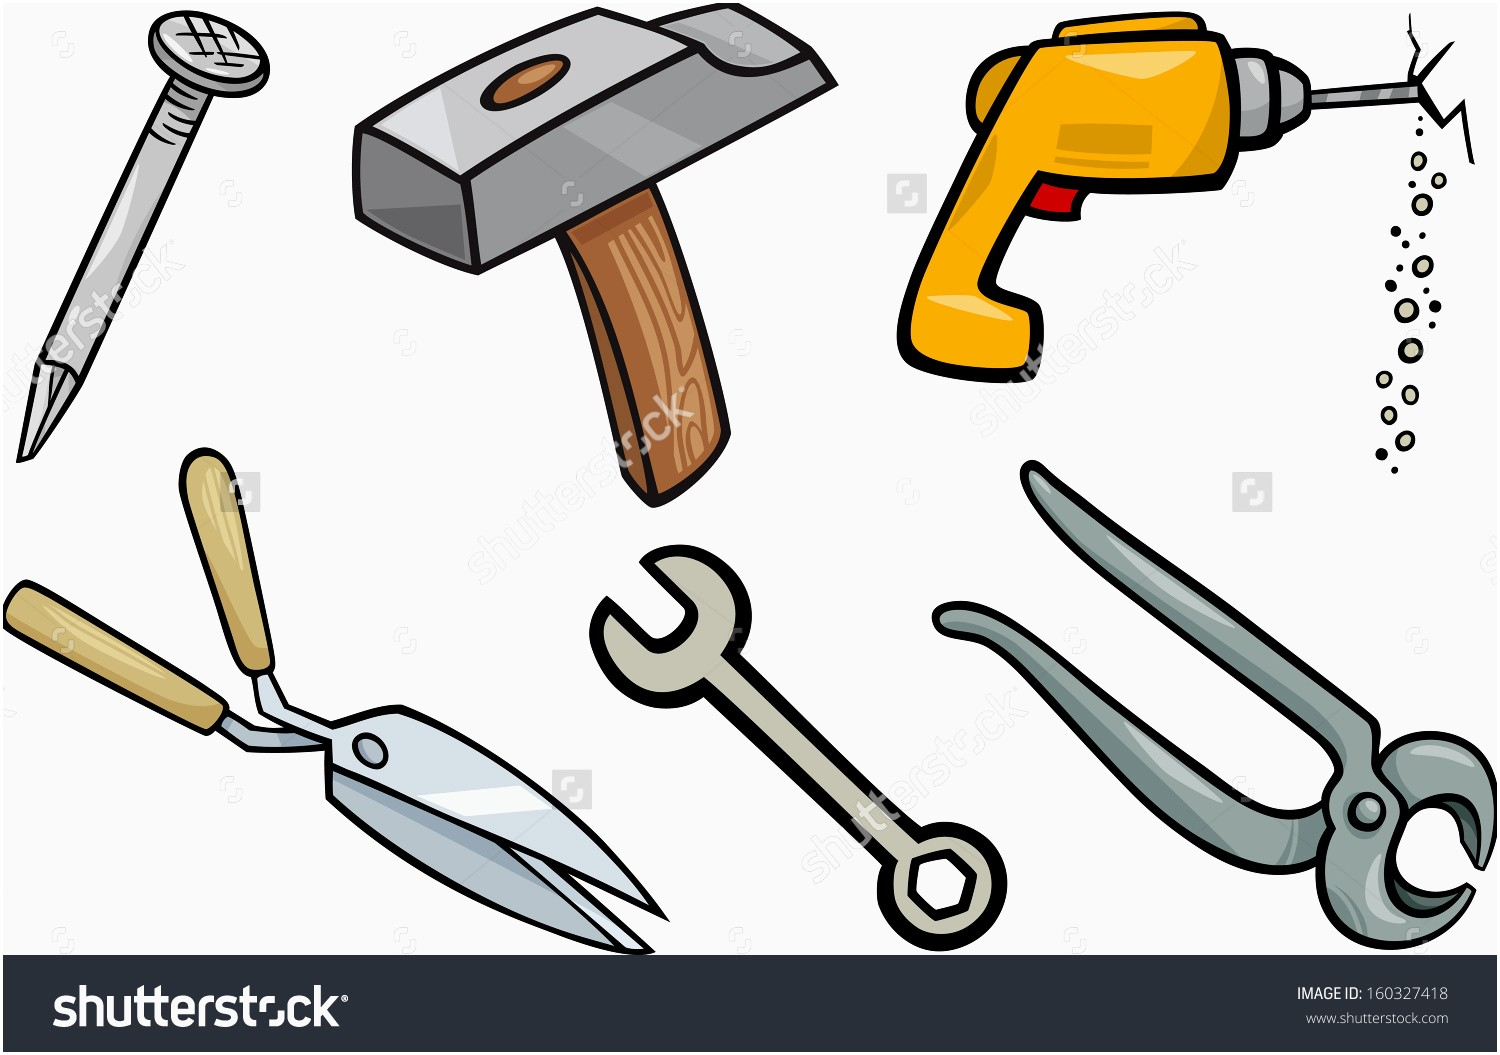 Woodworking Tools Clipart Lovely Woodworking Tools Clipart